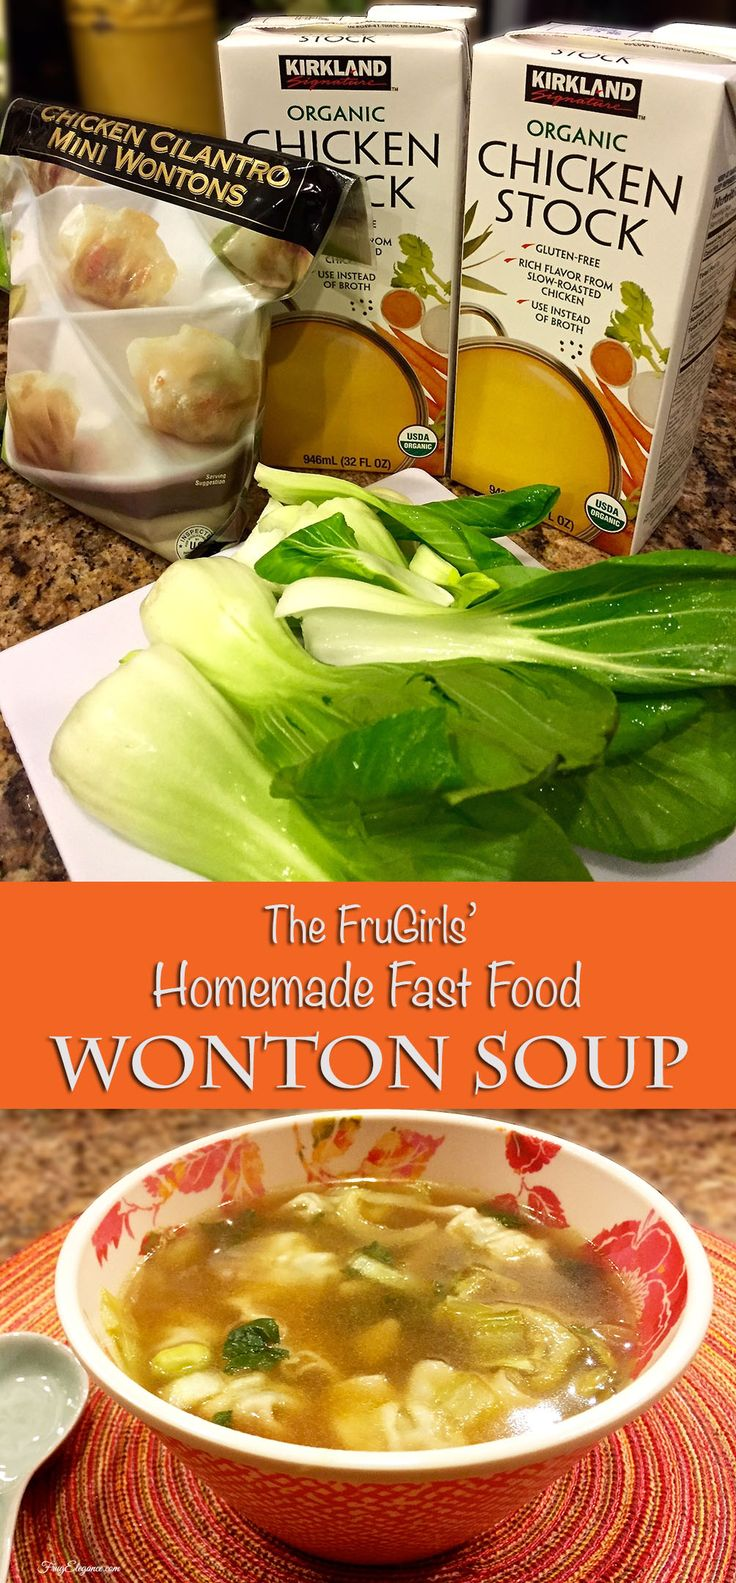 Homemade Fast Food that's better than going to the drive through. Warm & filling Wonton Soup- YUM!